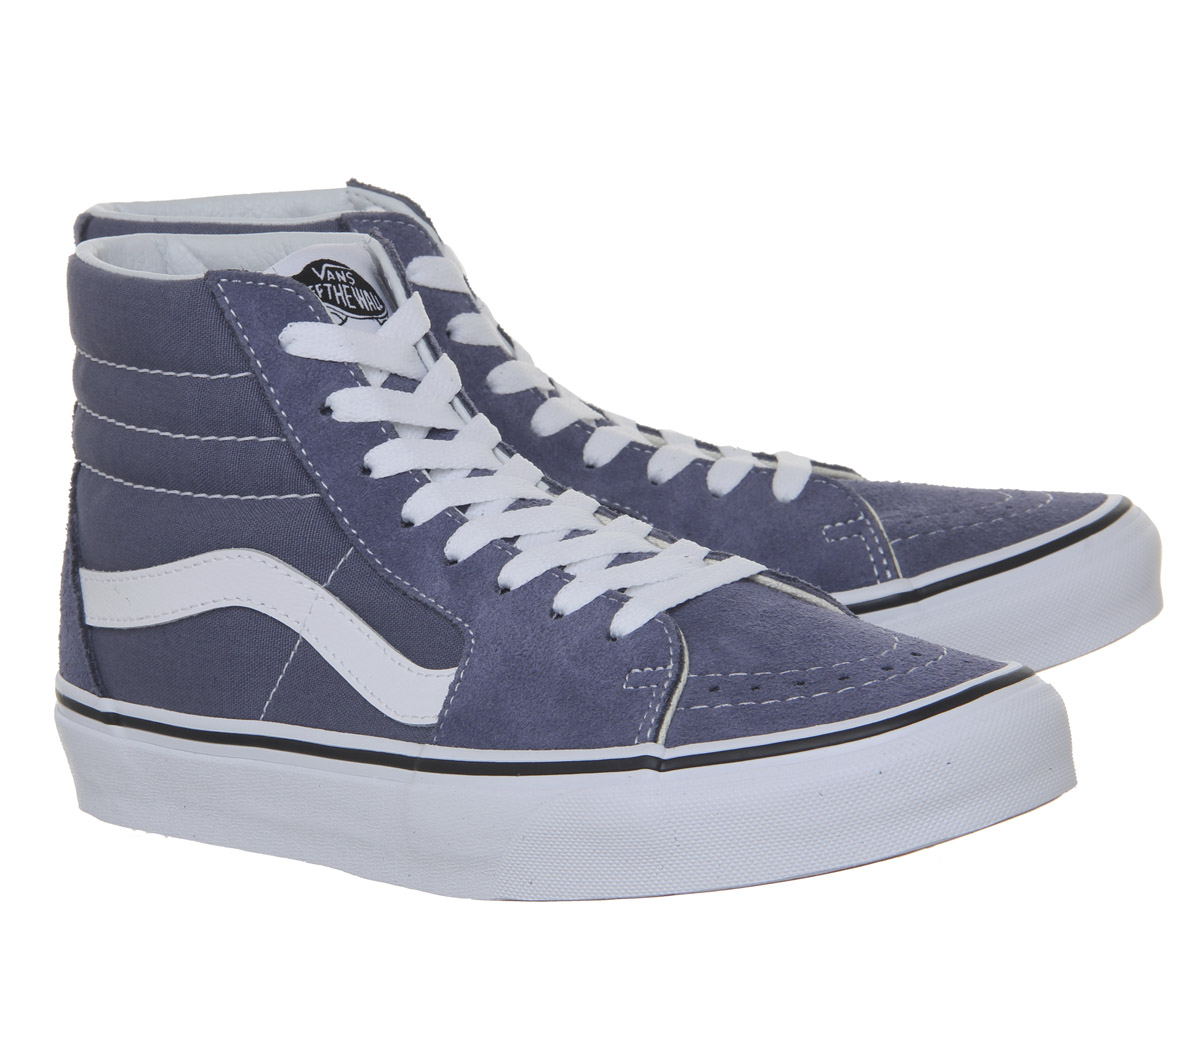 56192f35712 Womens Vans Sk8 Hi Trainers Grisaille True White Trainers Shoes